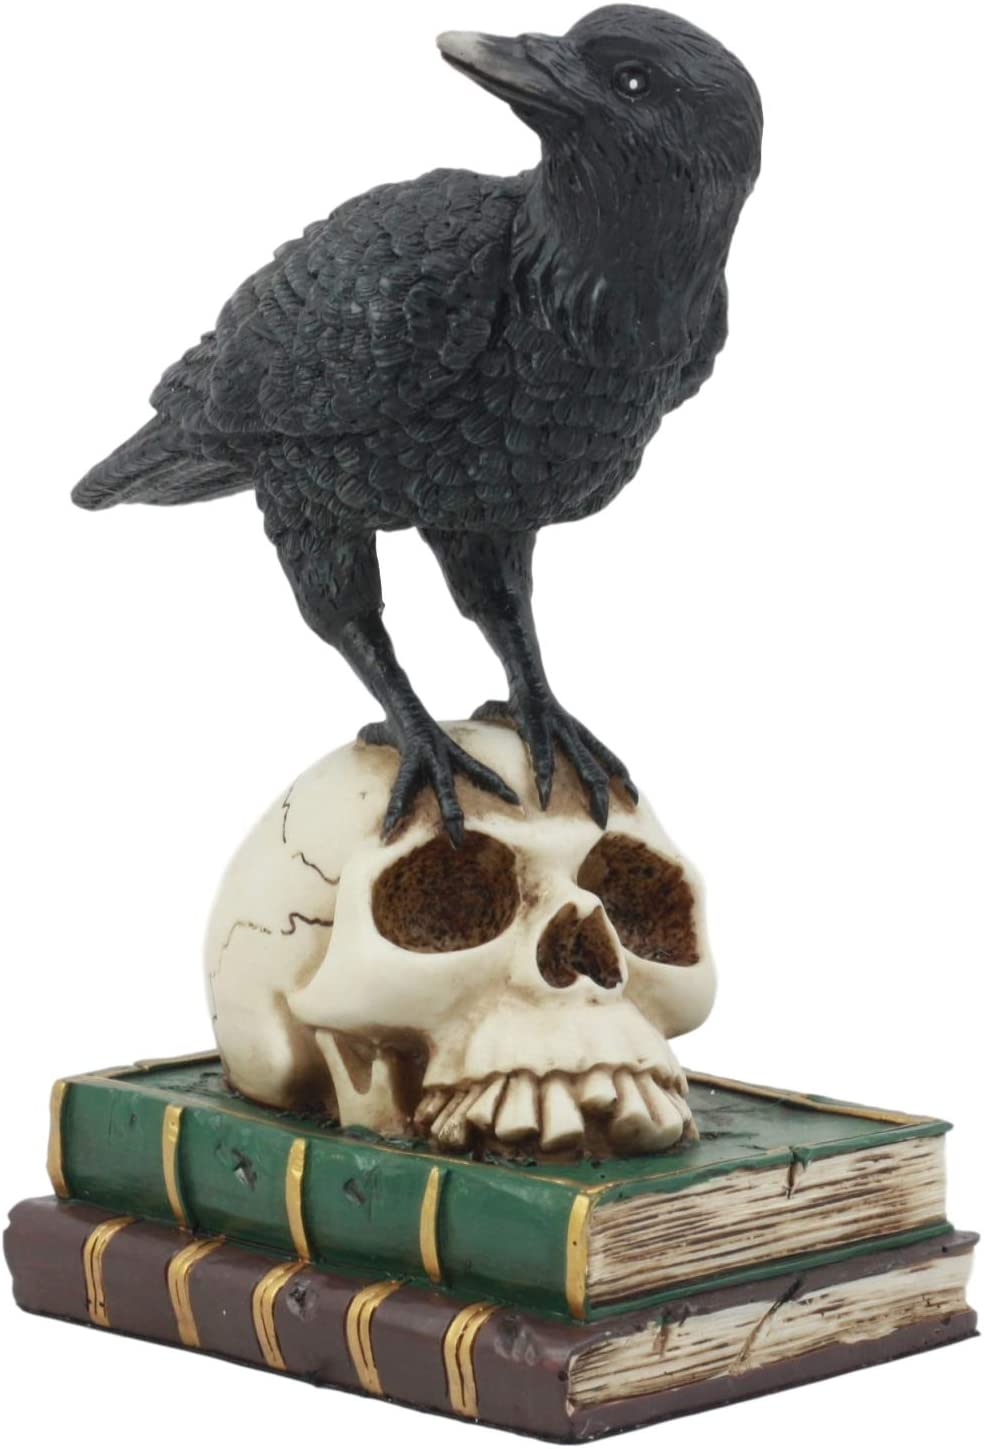 "Ebros Edgar Allan Poe Quoth The Raven Perching On Skull of Bibliography Statue 7.25"" Tall Ravens Crows On Books Ossuary Macabre Figurine"